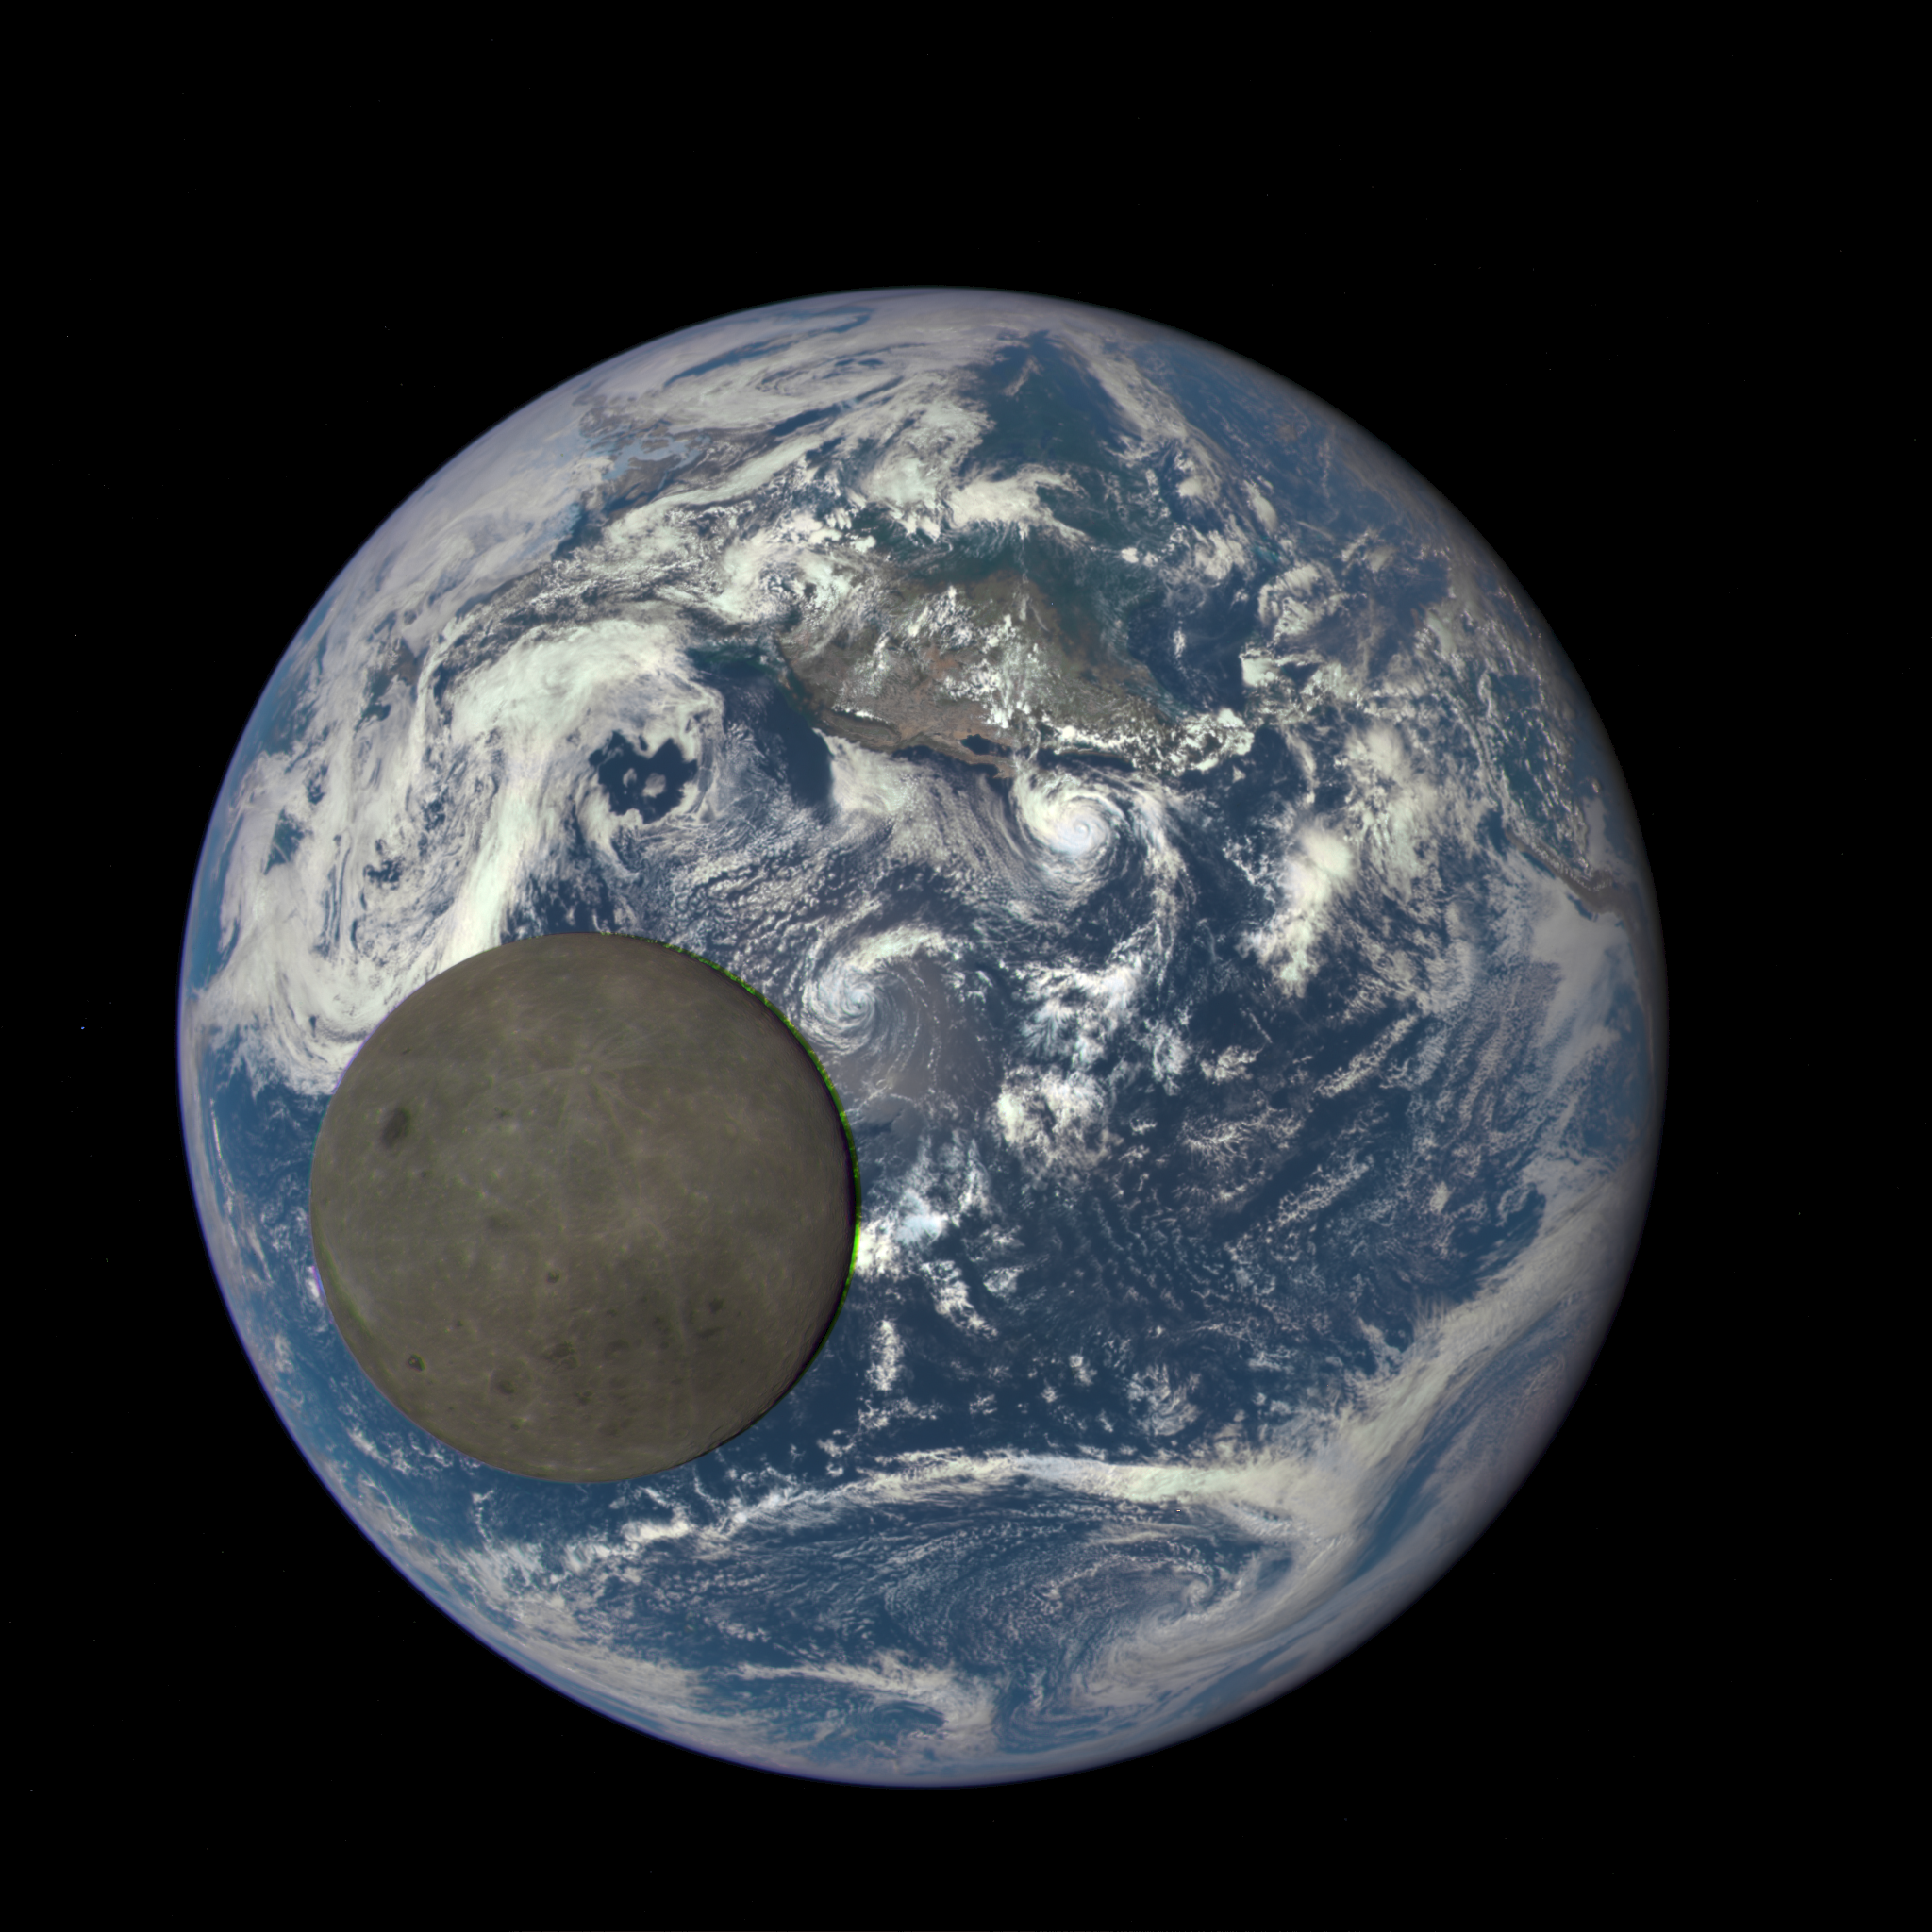 The fully illuminated far side of the Moon, as seen by the DSCOVR spacecraft's EPIC camera. From the Earth, this would be a New Moon. Image credit: NASA